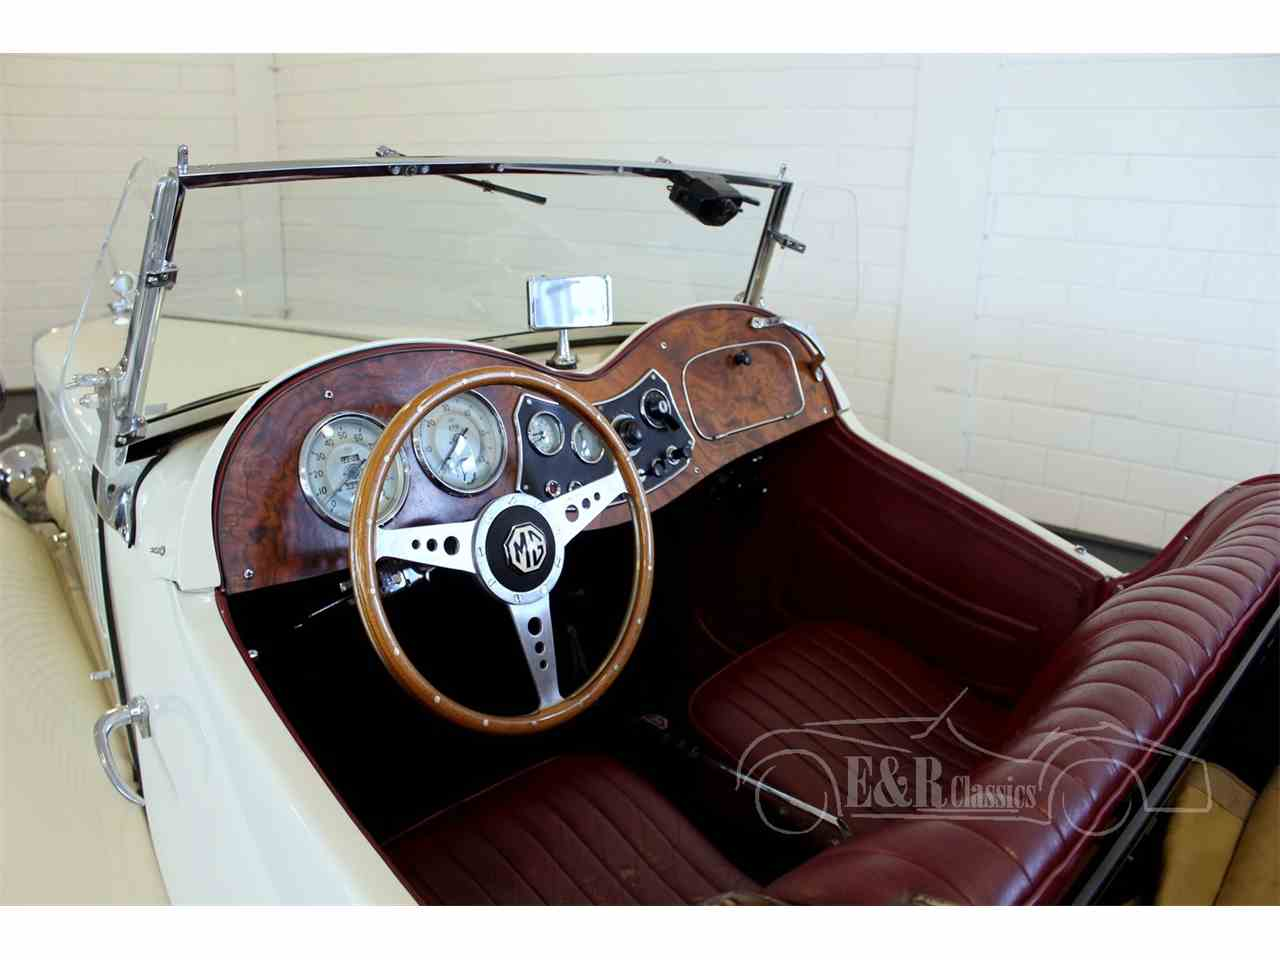 Large Picture of Classic '52 MG TD located in Noord Brabant - $39,550.00 - LV6Z